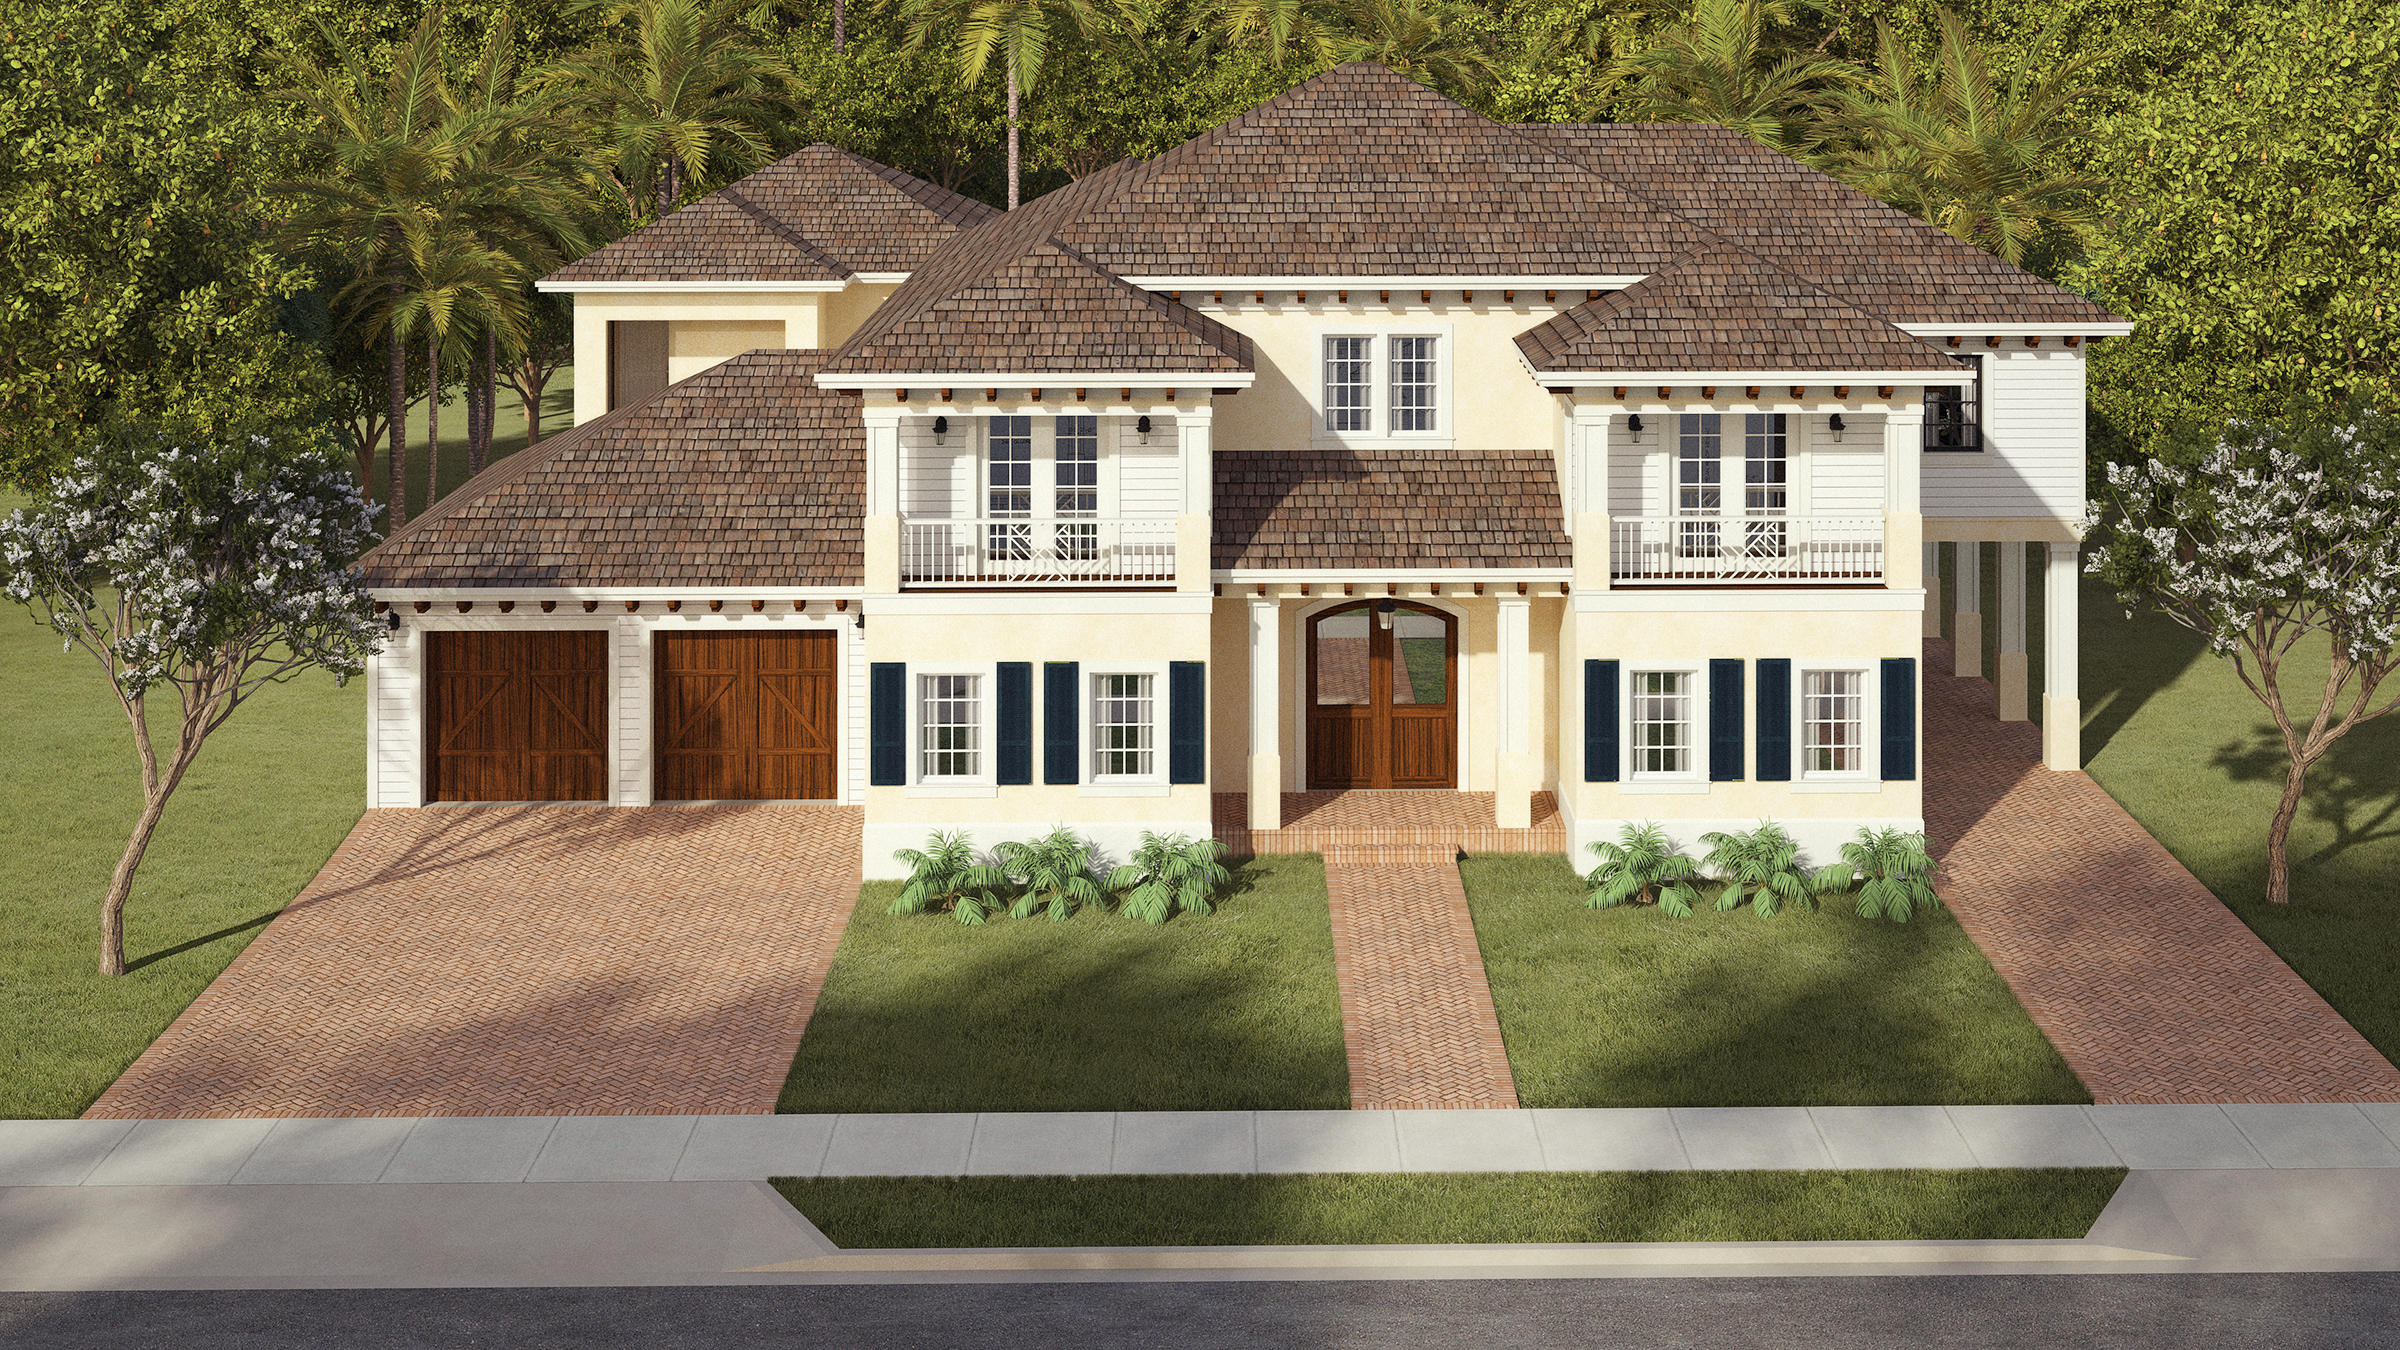 127 Potter Road, West Palm Beach, Florida 33405, 5 Bedrooms Bedrooms, ,6.1 BathroomsBathrooms,Single Family,For Sale,Potter,RX-10498037